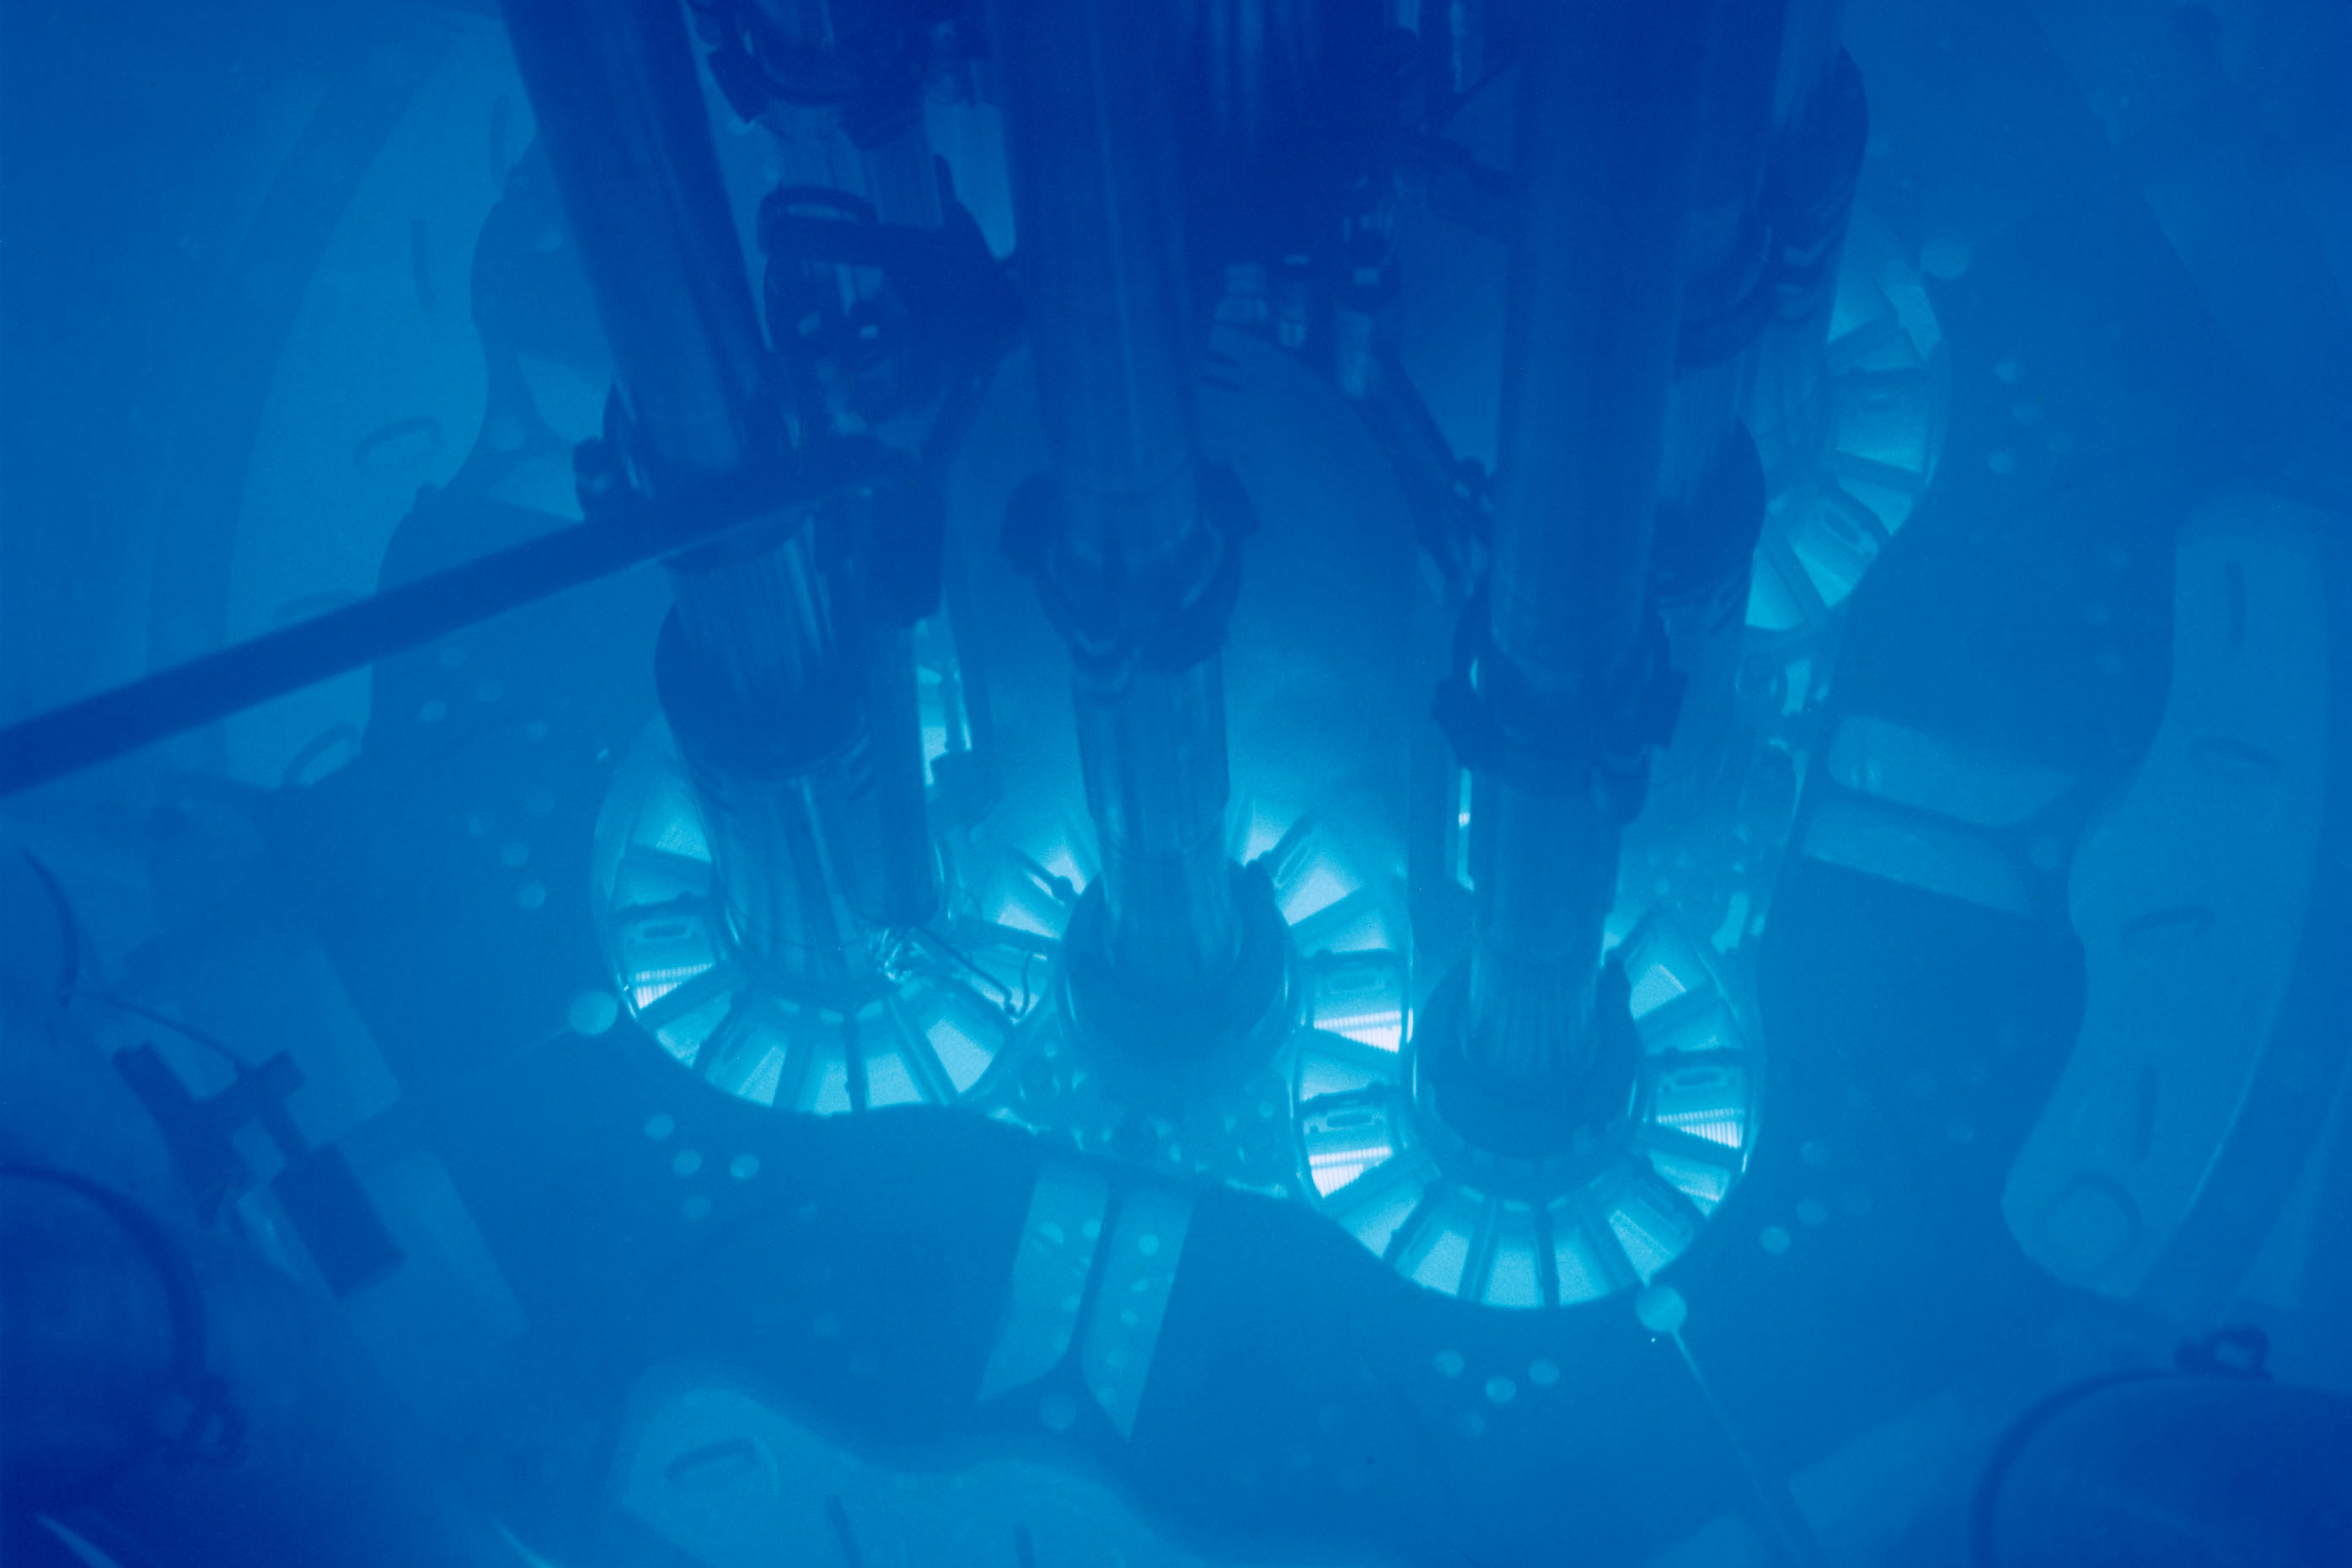 Nnsa Reaches Milestone In Developing New Nuclear Fuel For